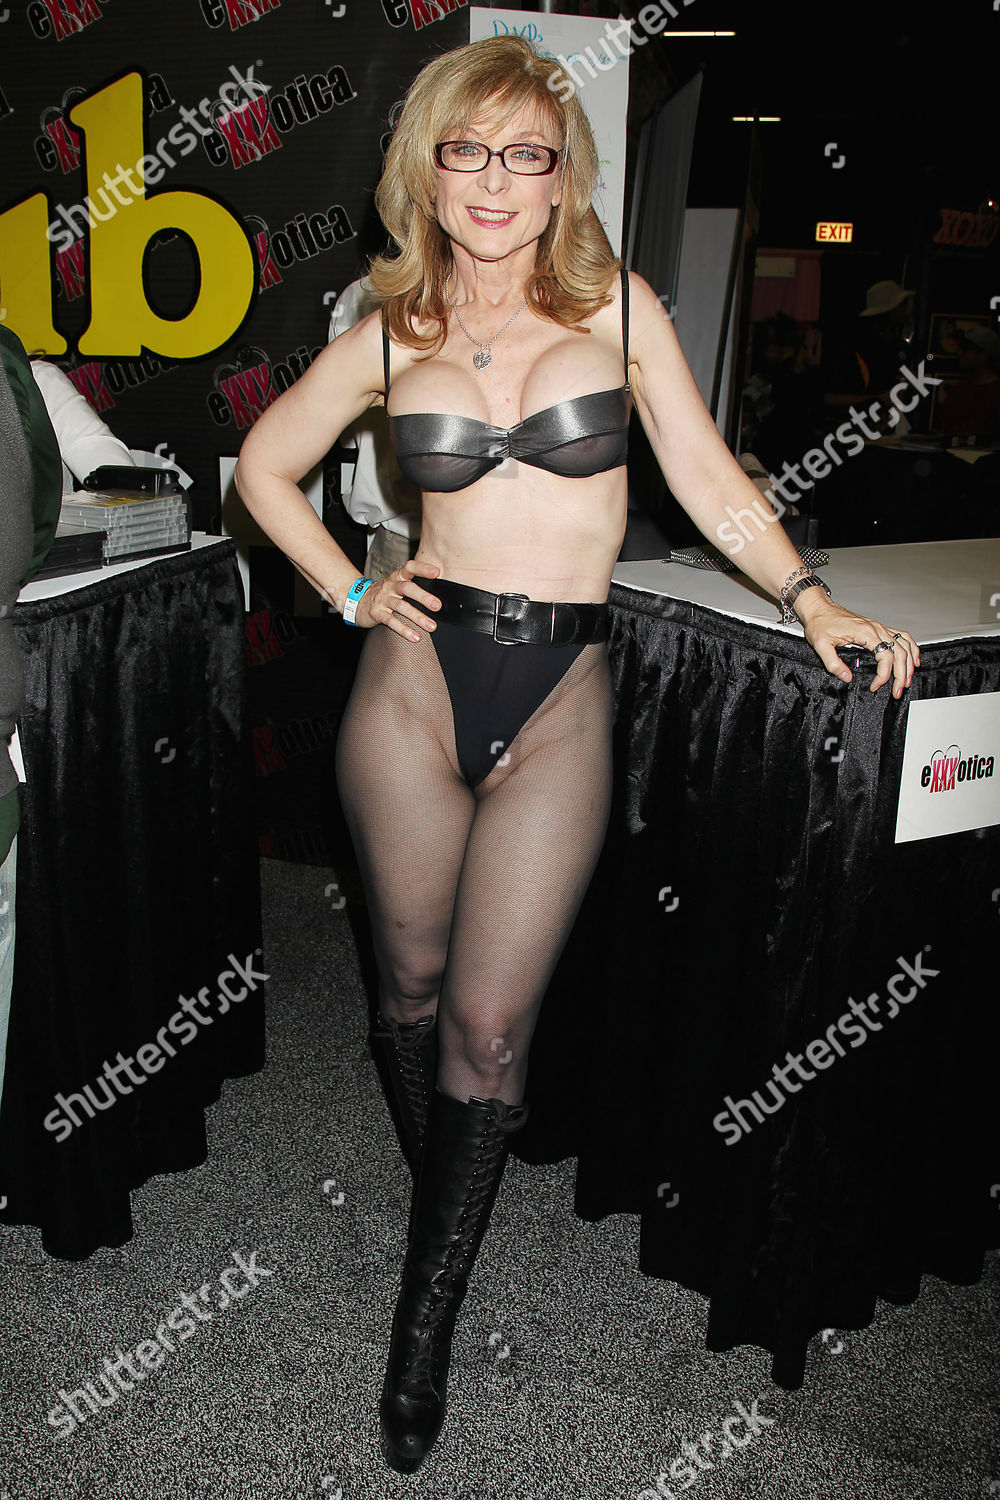 nina hartley pix